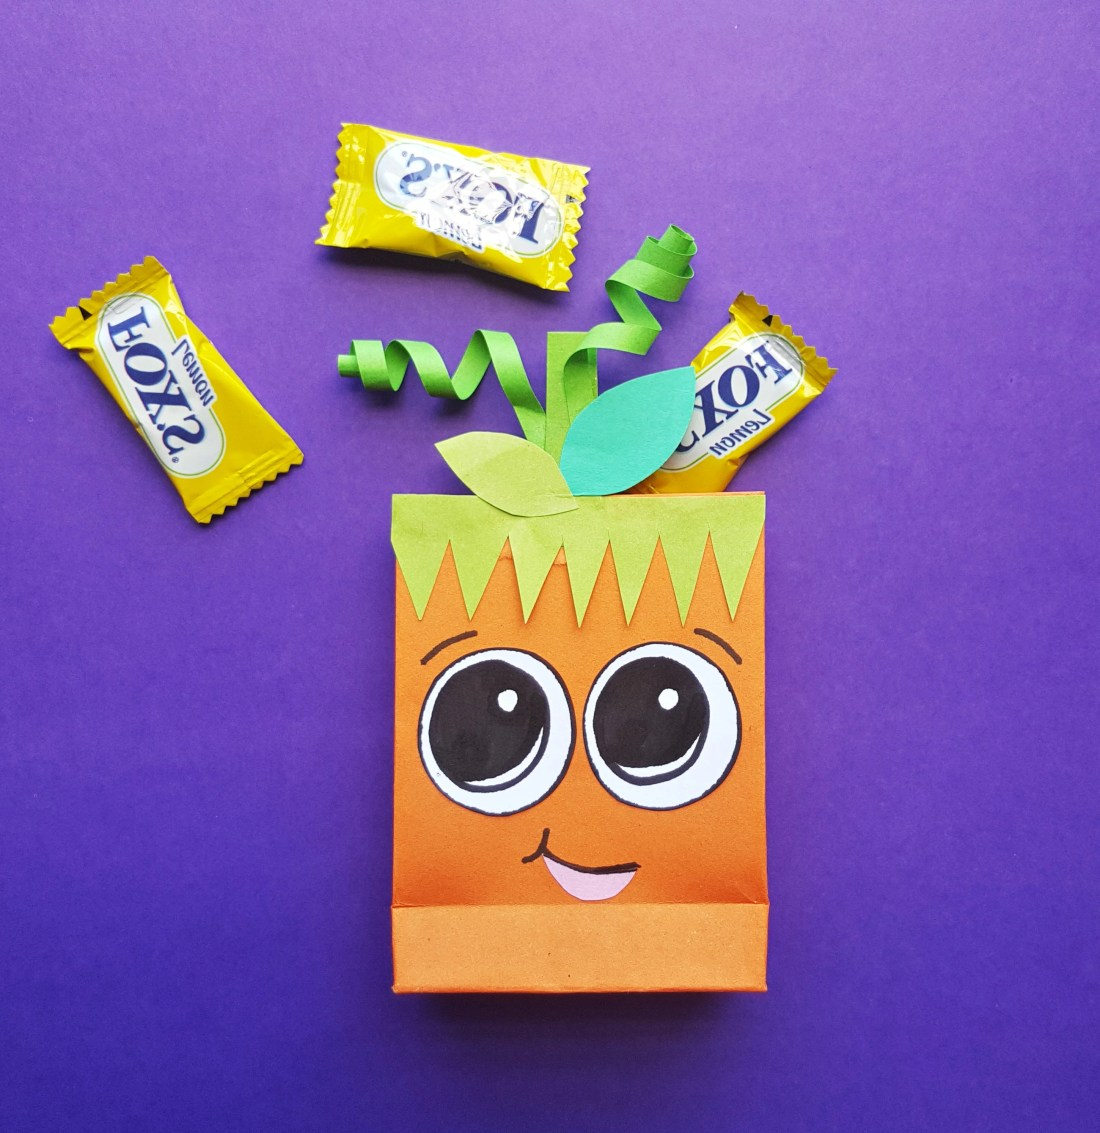 Pumpkin Trick or Treat Bags Halloween Craft. These cute pumpkin trick or treat bags are perfect for Halloween themed class parties, easy to follow and fun to hand out to friends.